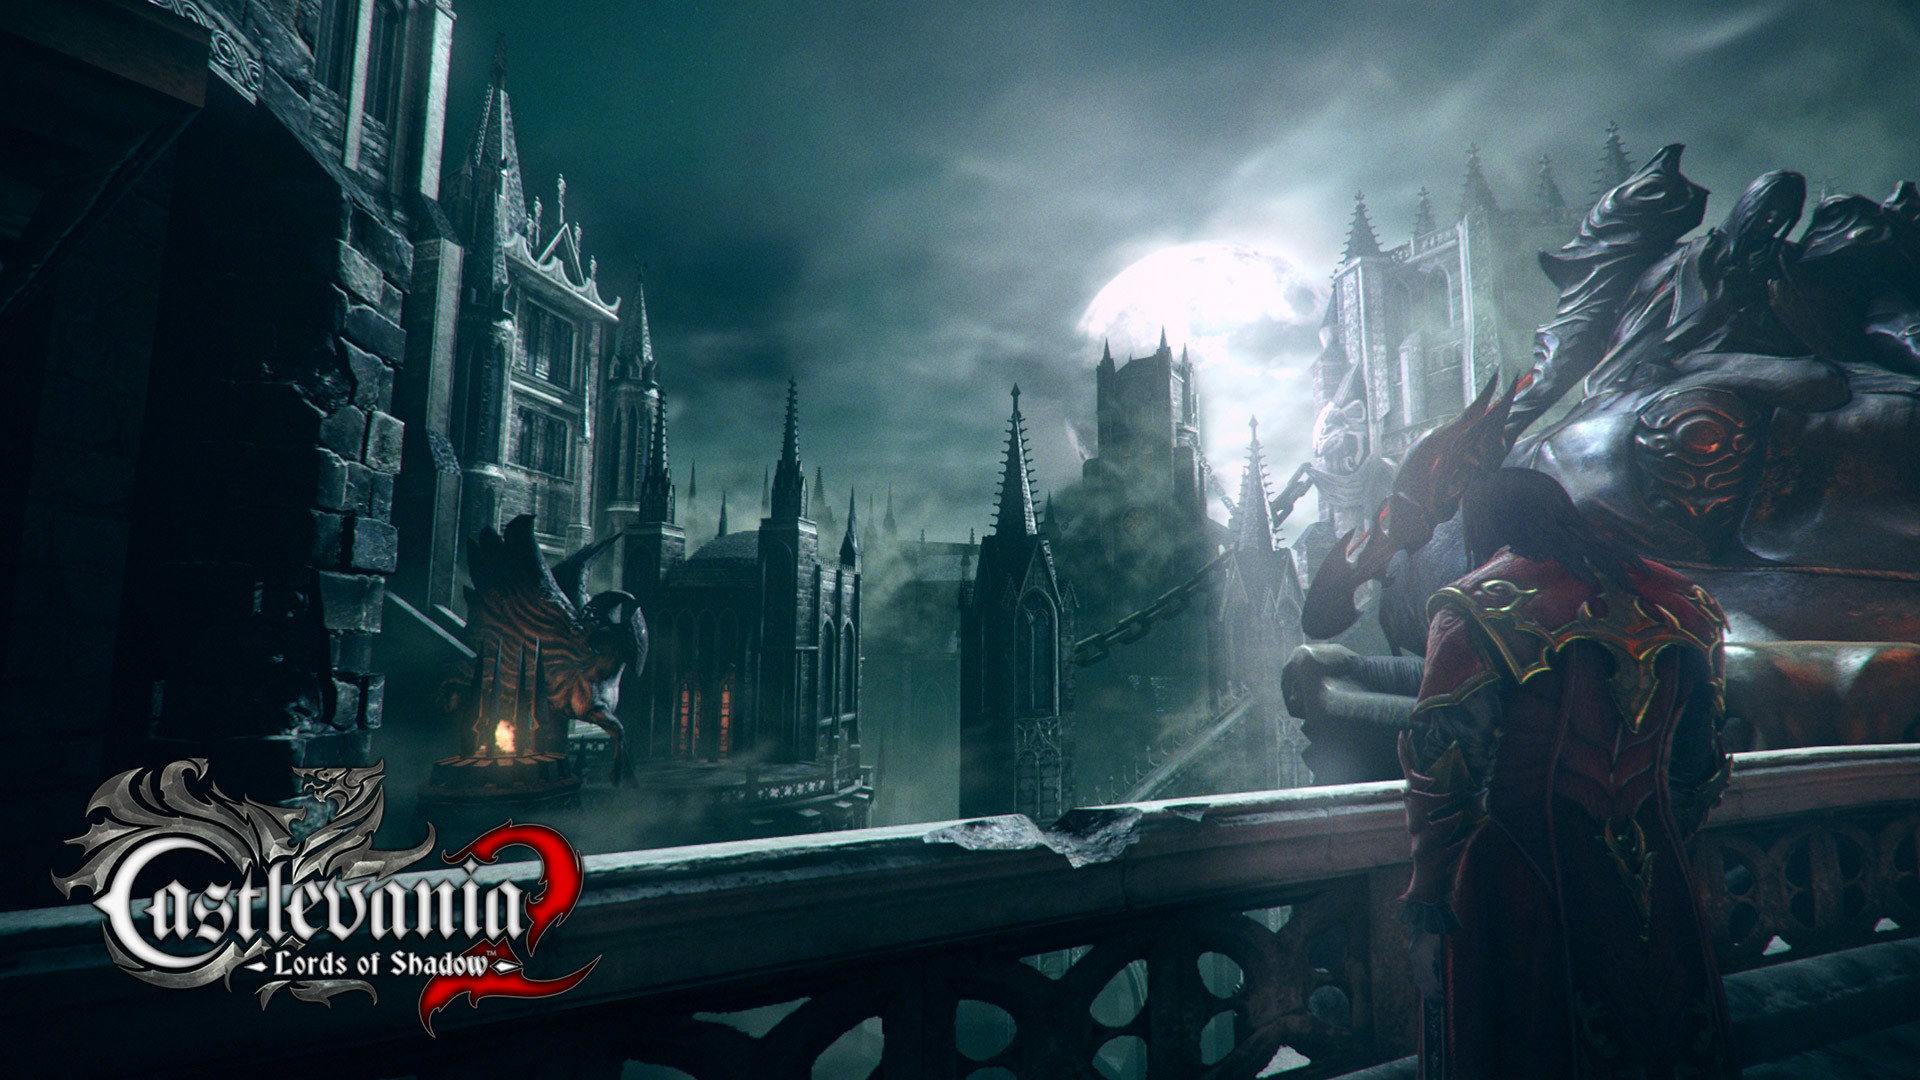 Res: 1920x1080, Castlevania Lords of Shadows 2 Wallpaper 4